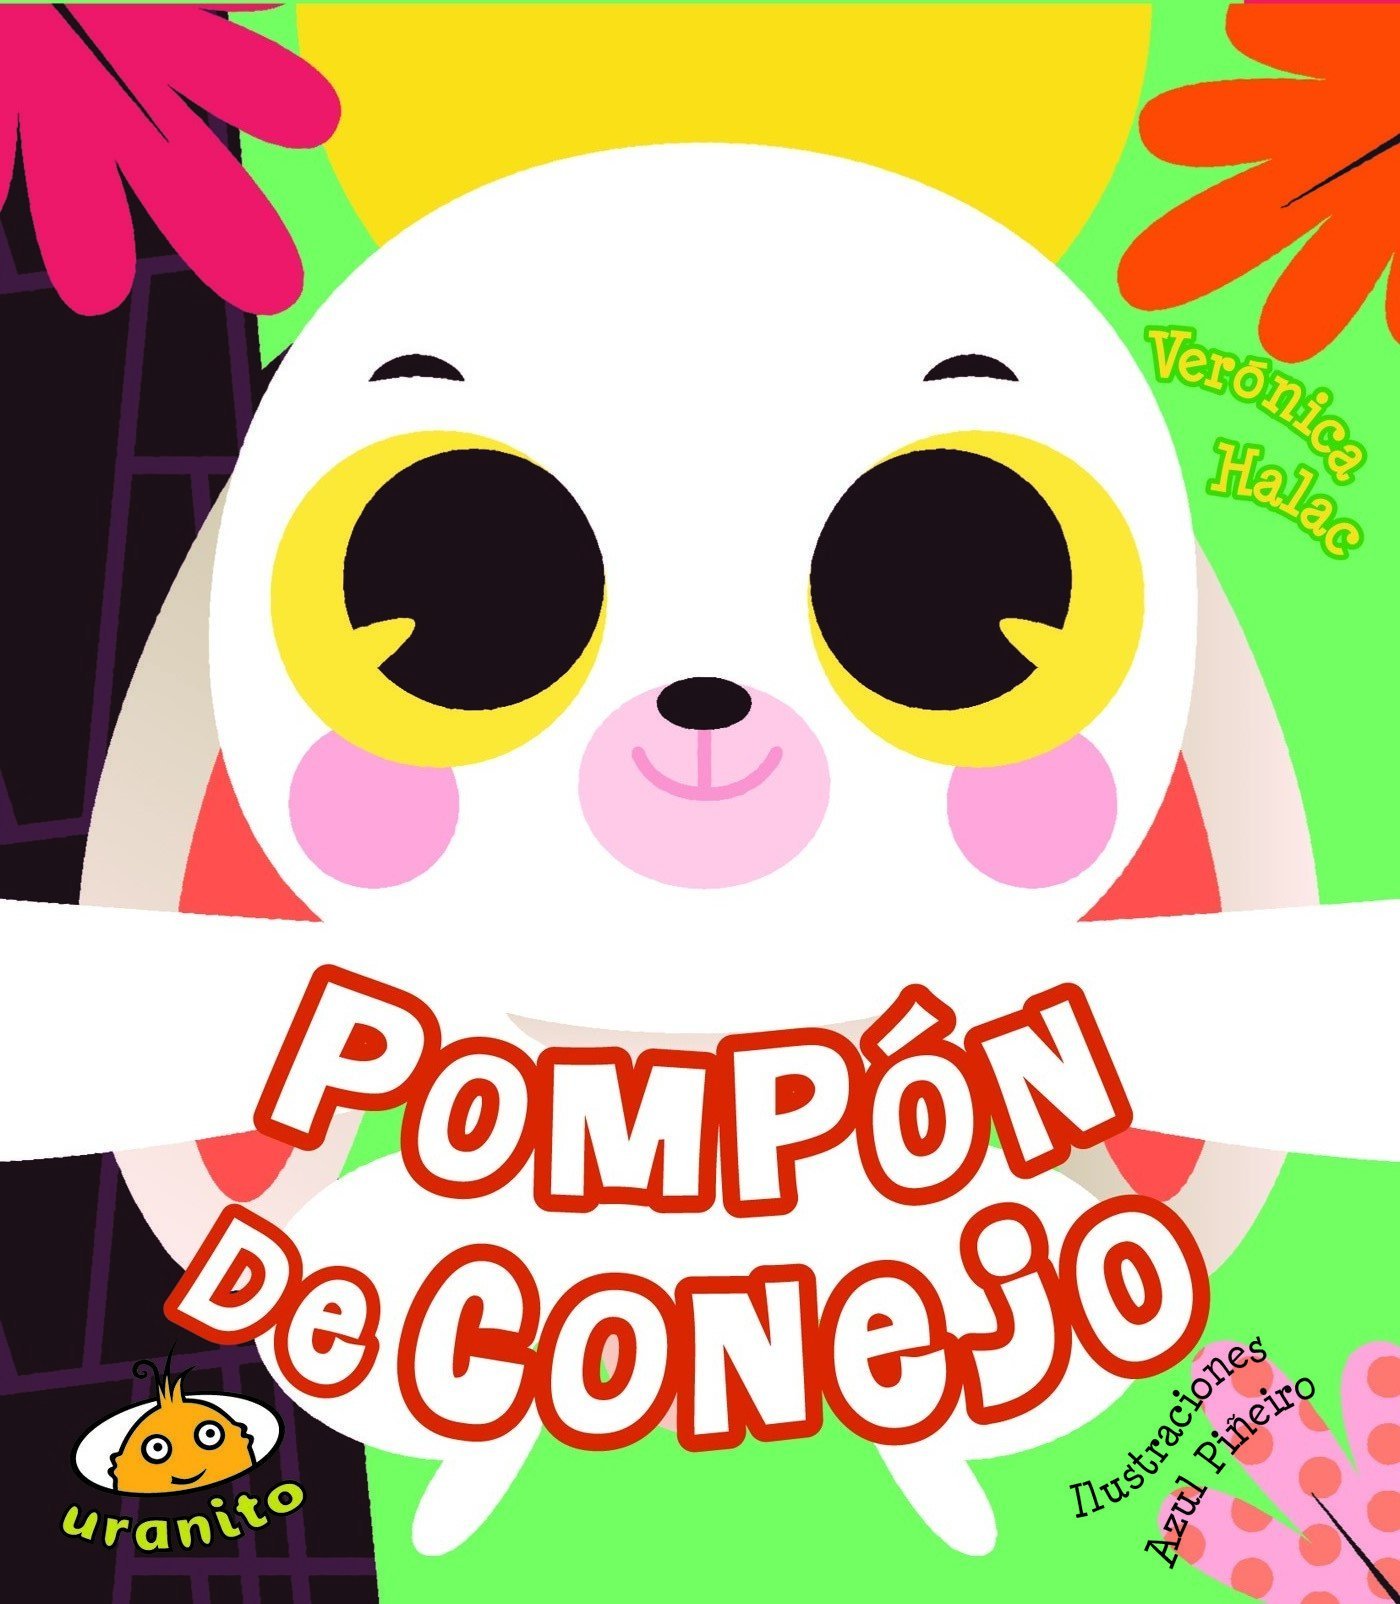 Pompon de conejo (Spanish Edition): Verónica Halac: 9786079344924: Amazon.com: Books